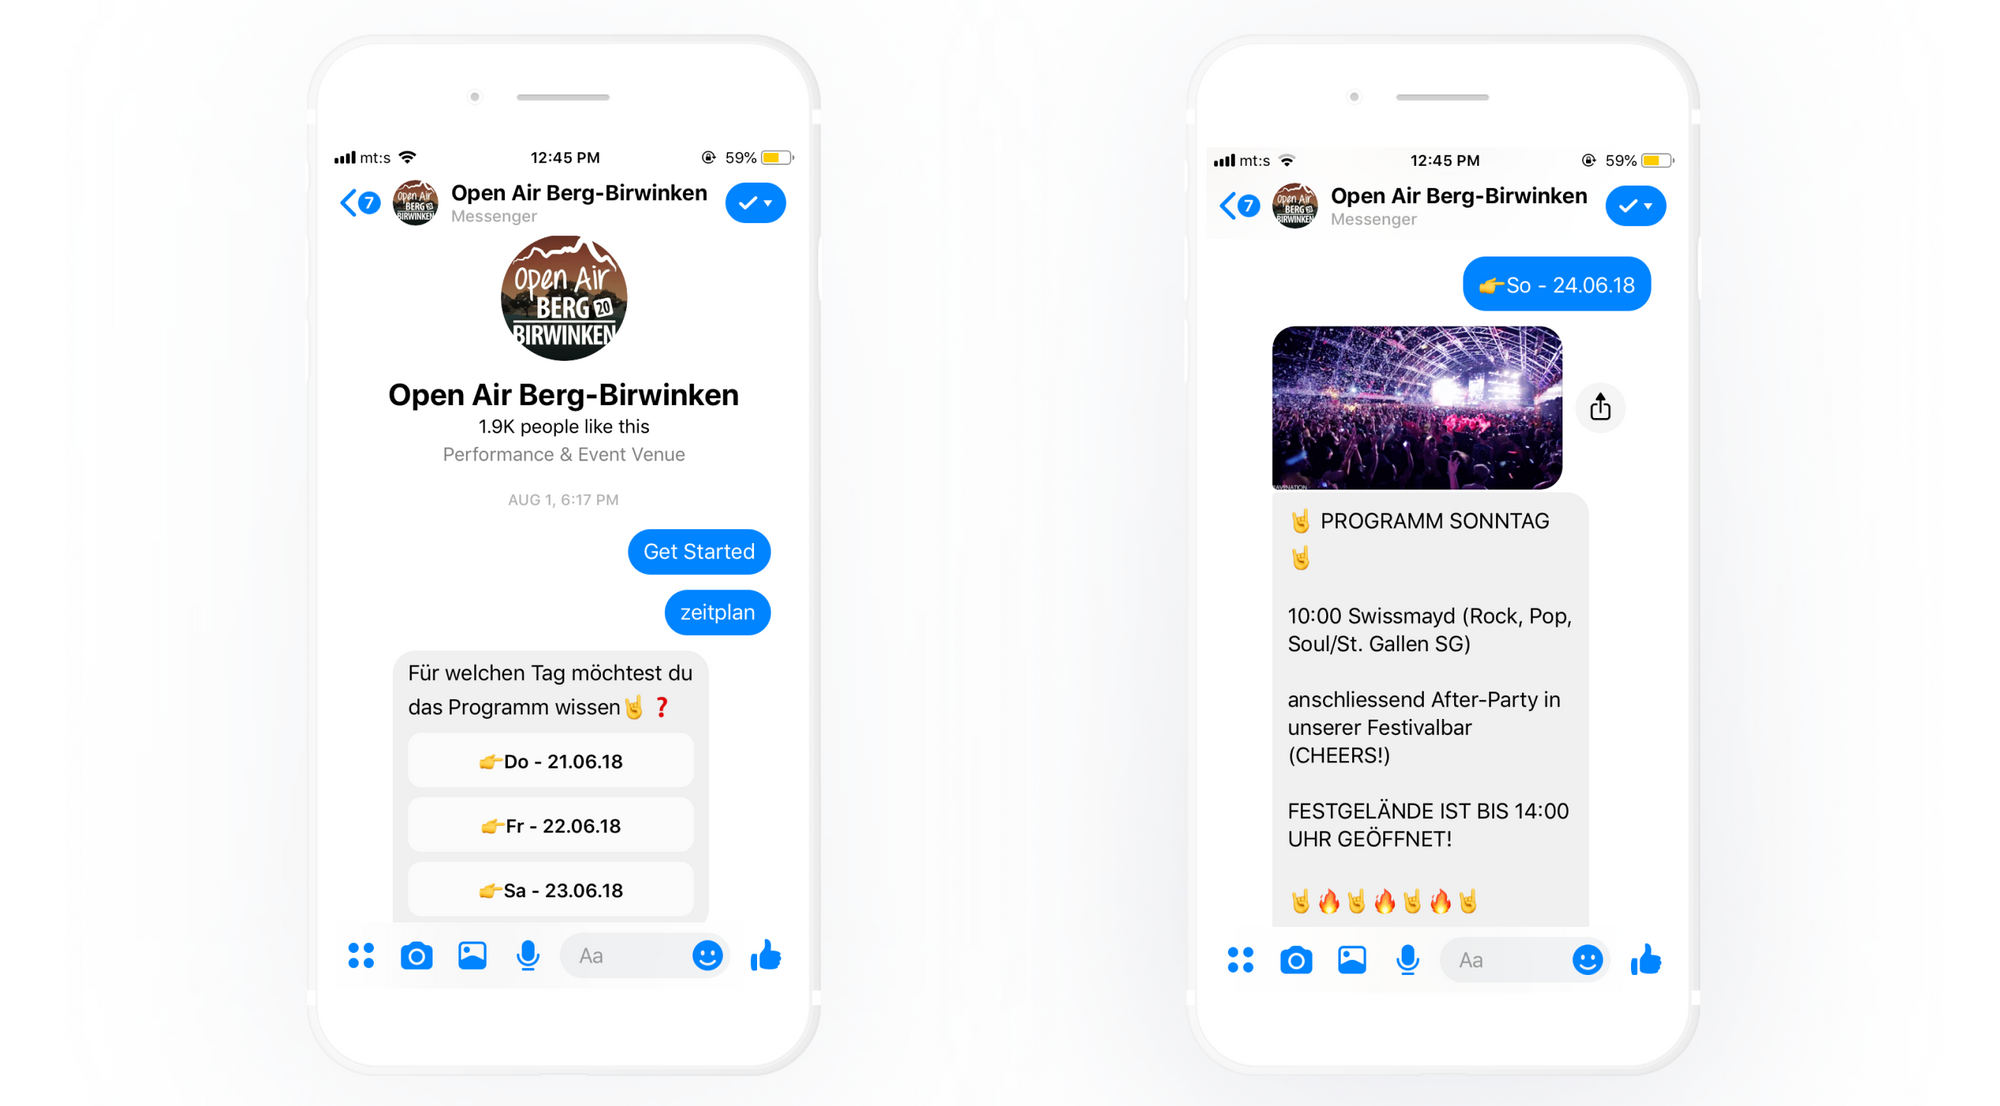 Music Festival Cuts Cost per Lead by 7x With Chatfuel Bot